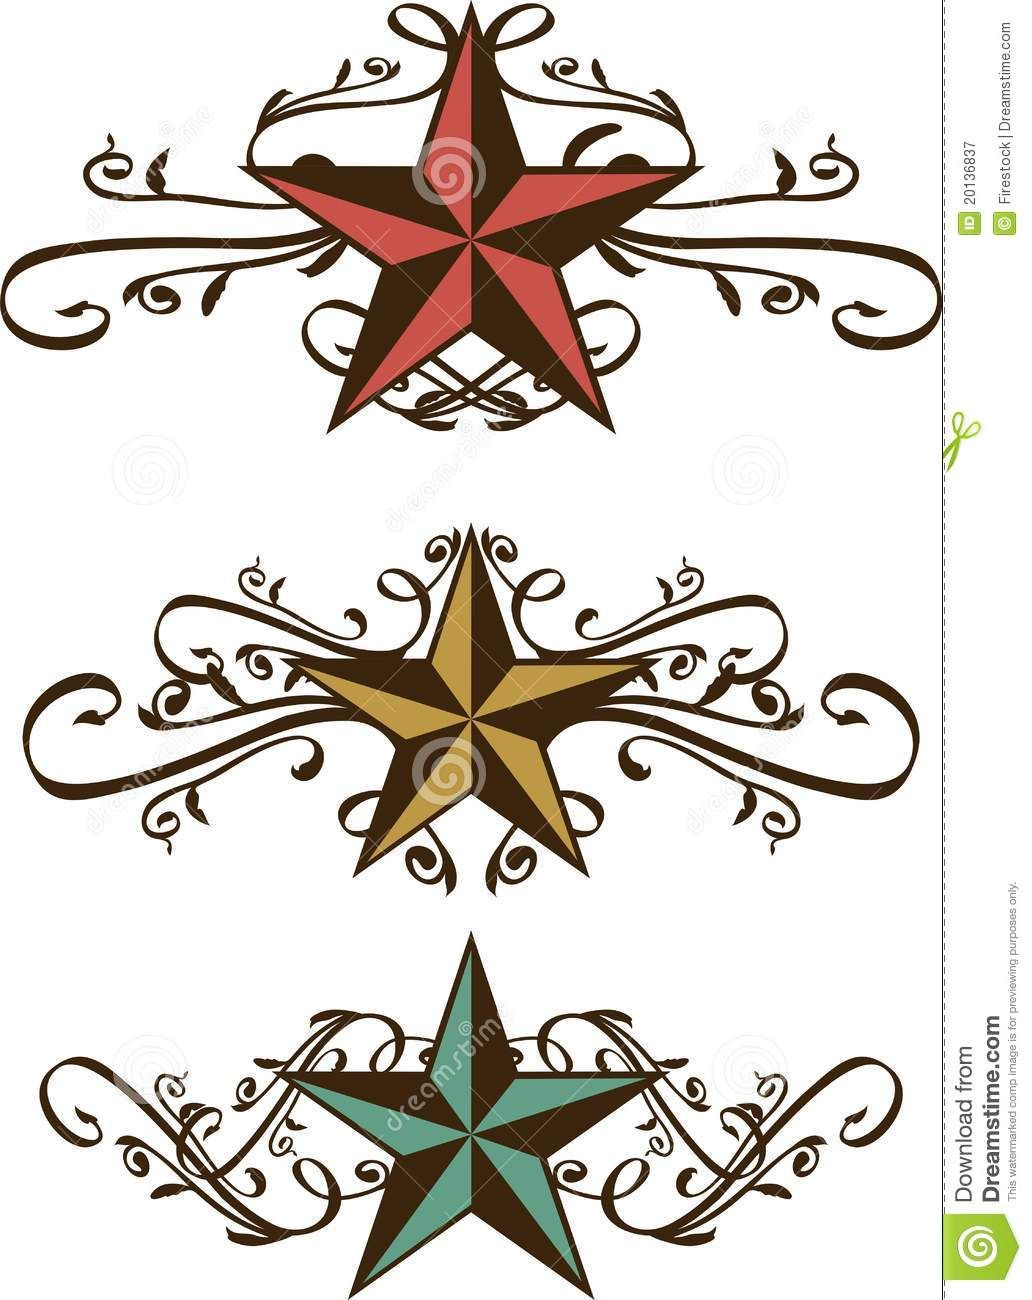 Western scroll clipart free clip freeuse Clip Art Western Border | 2016 The best online collection of ... clip freeuse